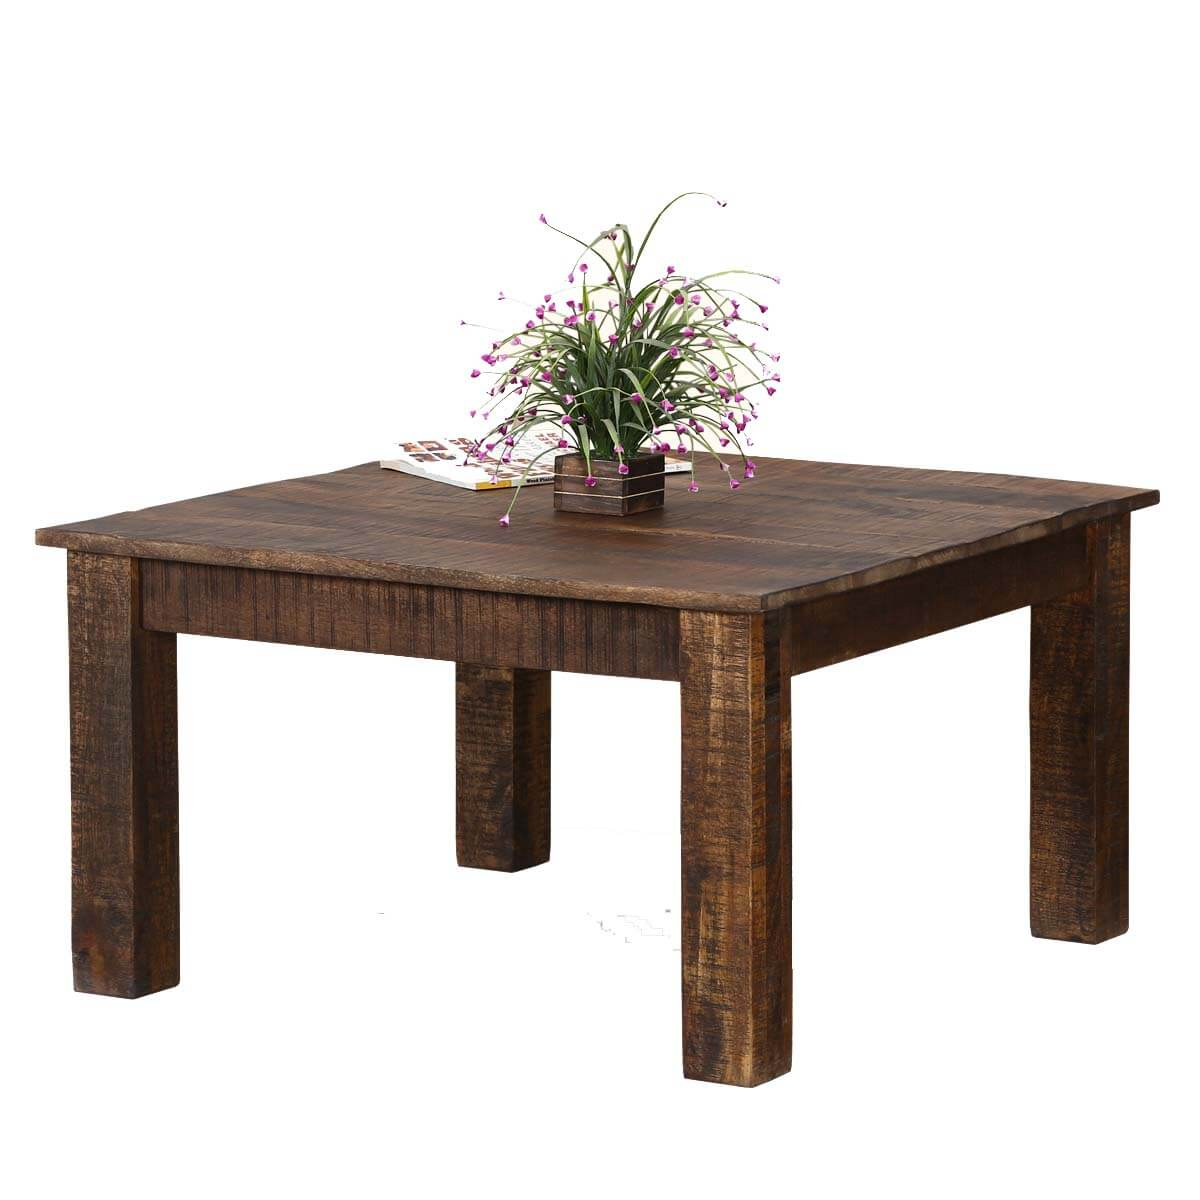 "Square Coffee Table: Rustic & Real Solid Mango Wood 31"" Square Coffee Table"